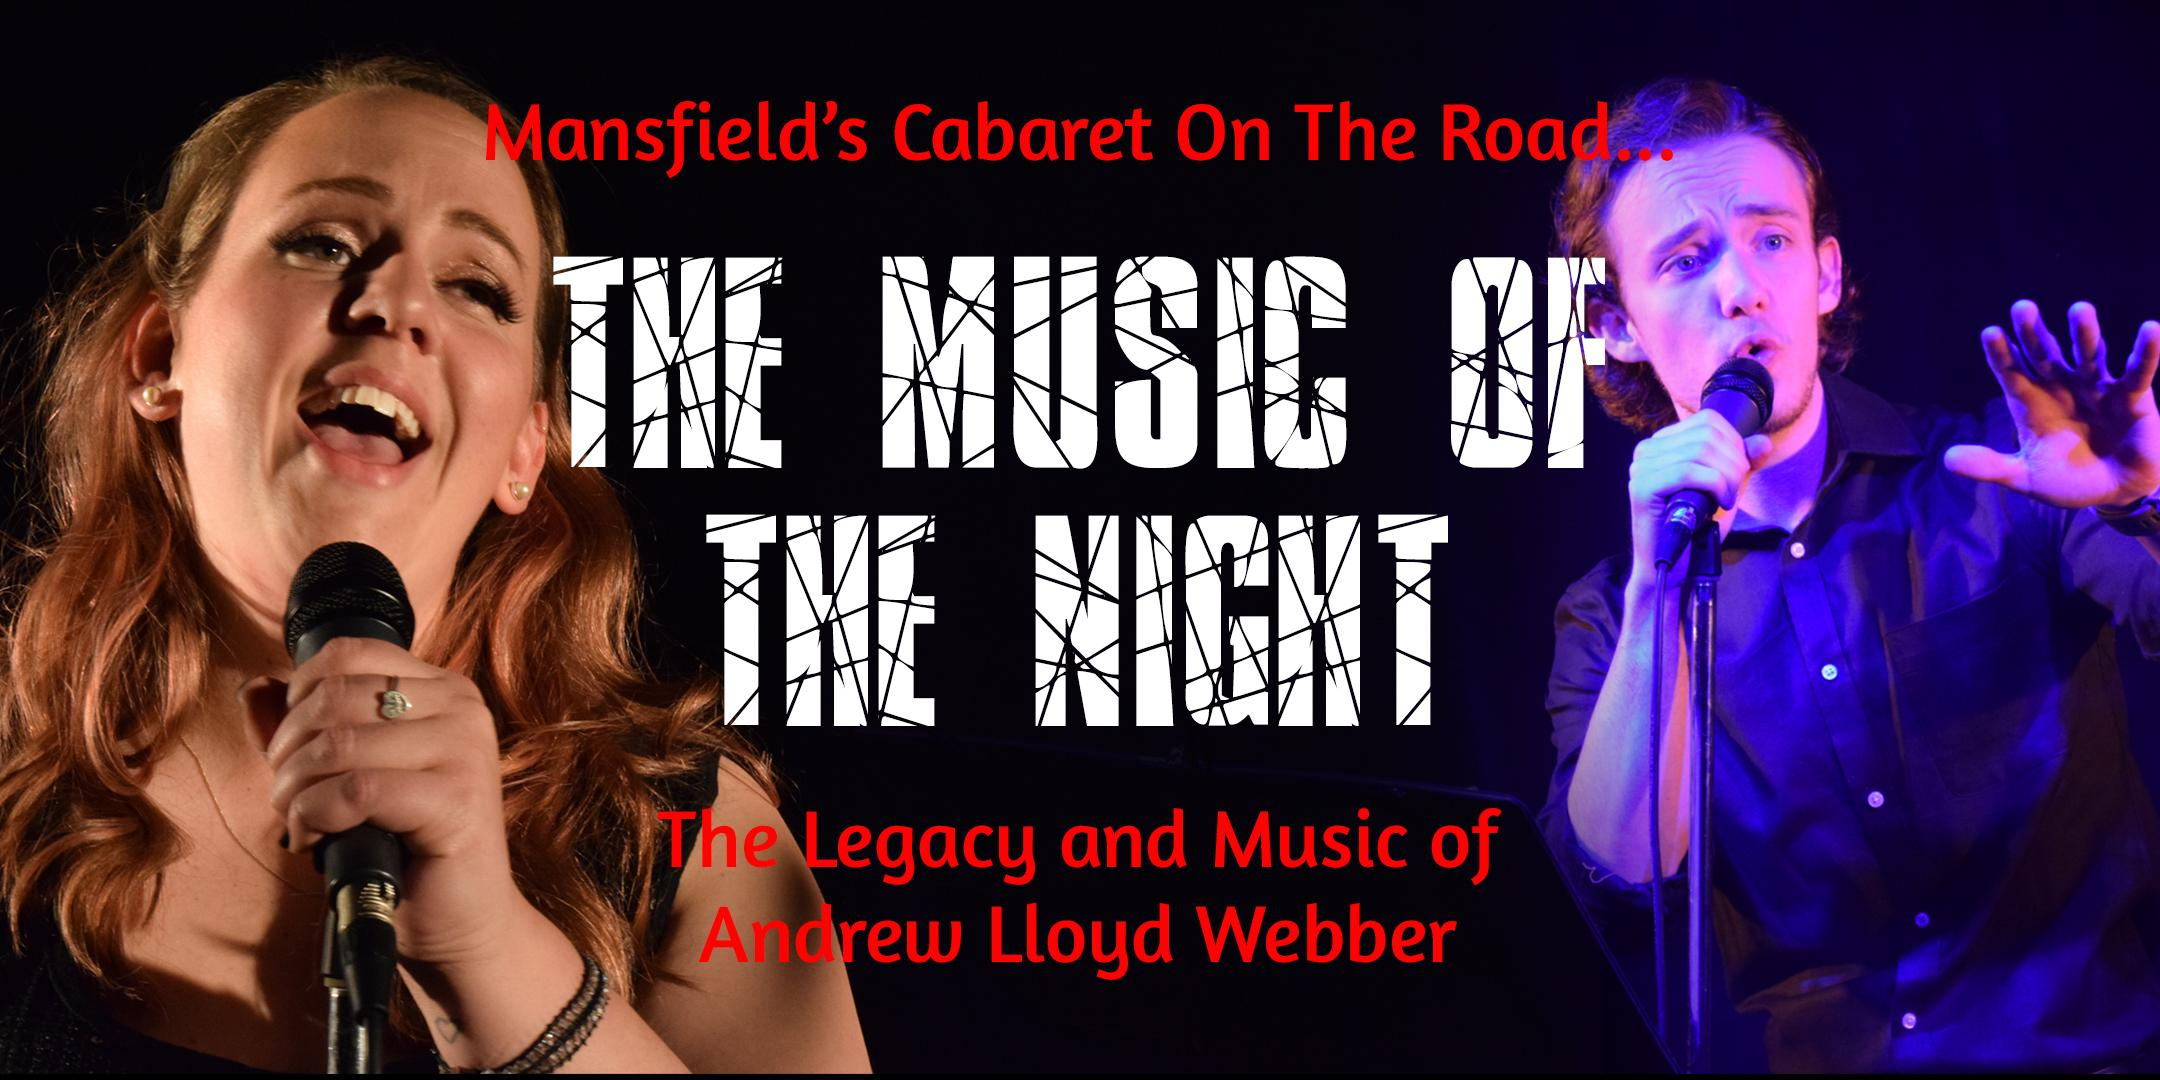 CANCELLED: The Music of the Night:The Legacy & Music of Andrew Lloyd Webber